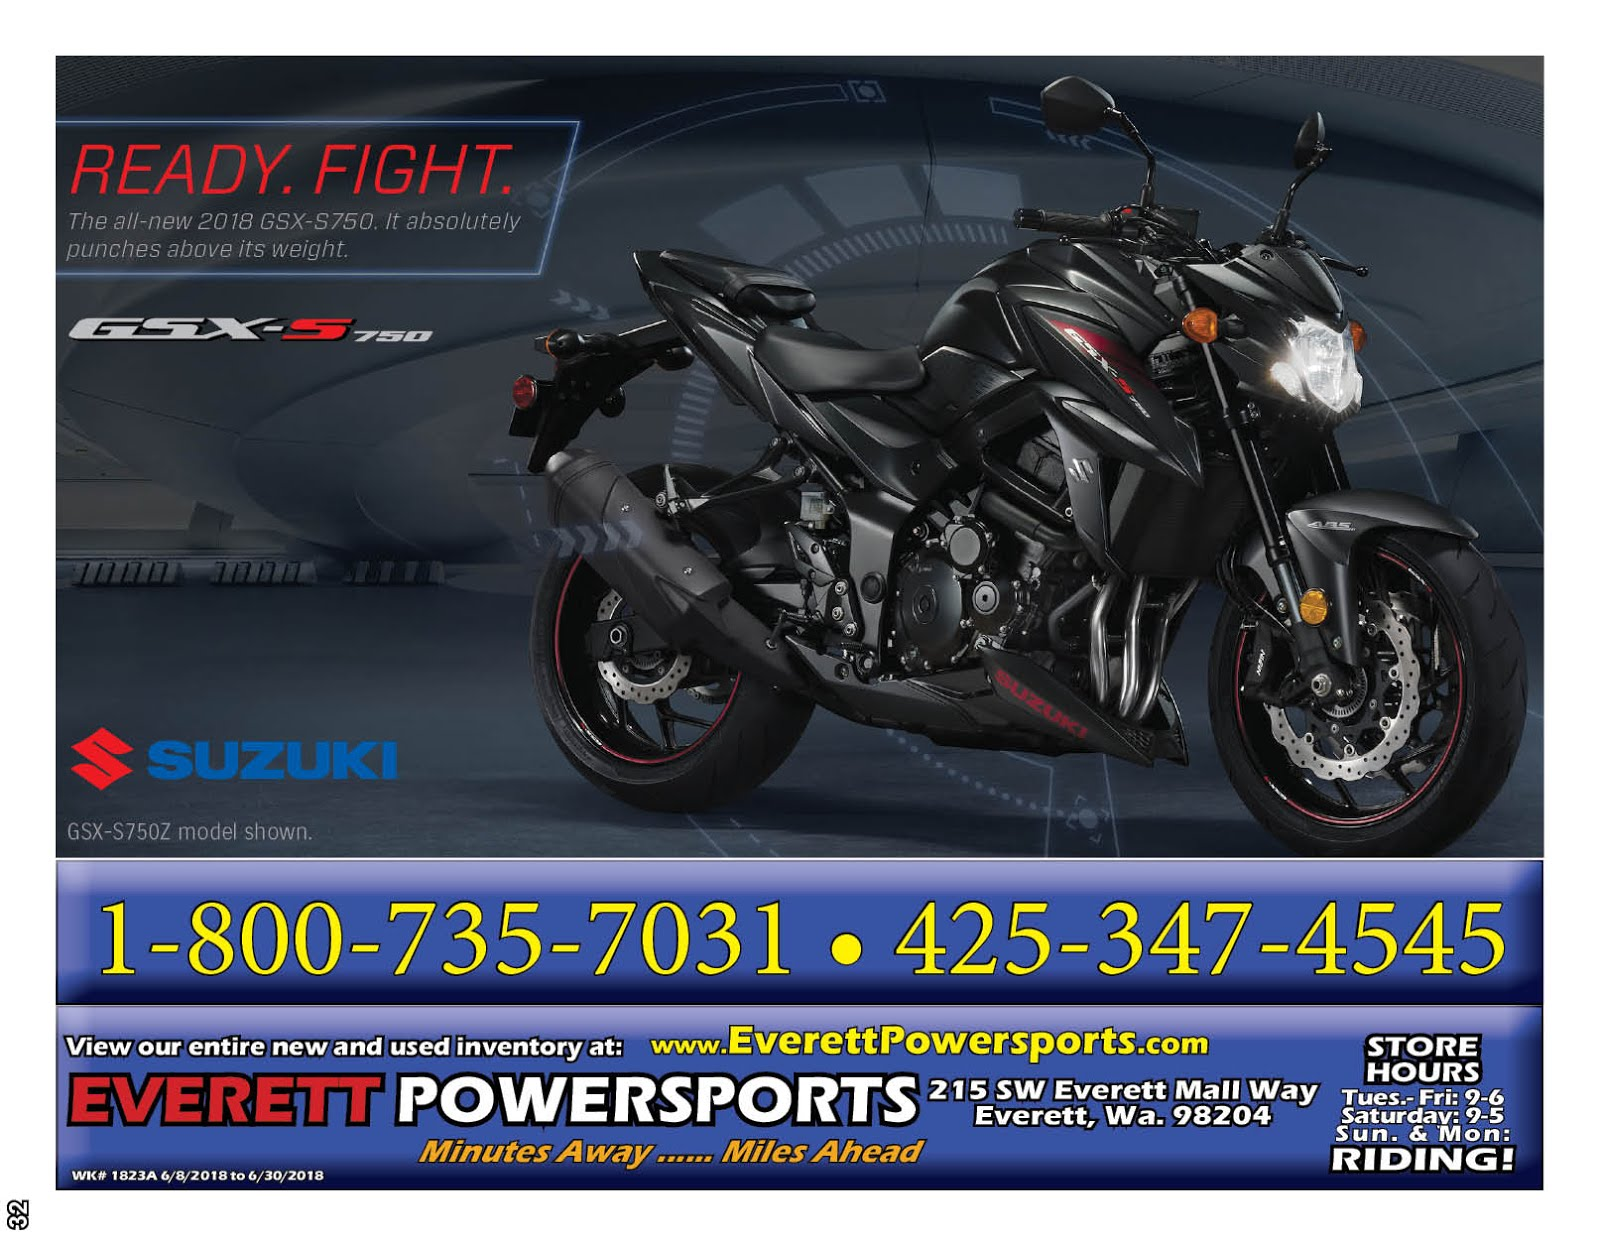 Everett Powersports Suzuki Sale!!